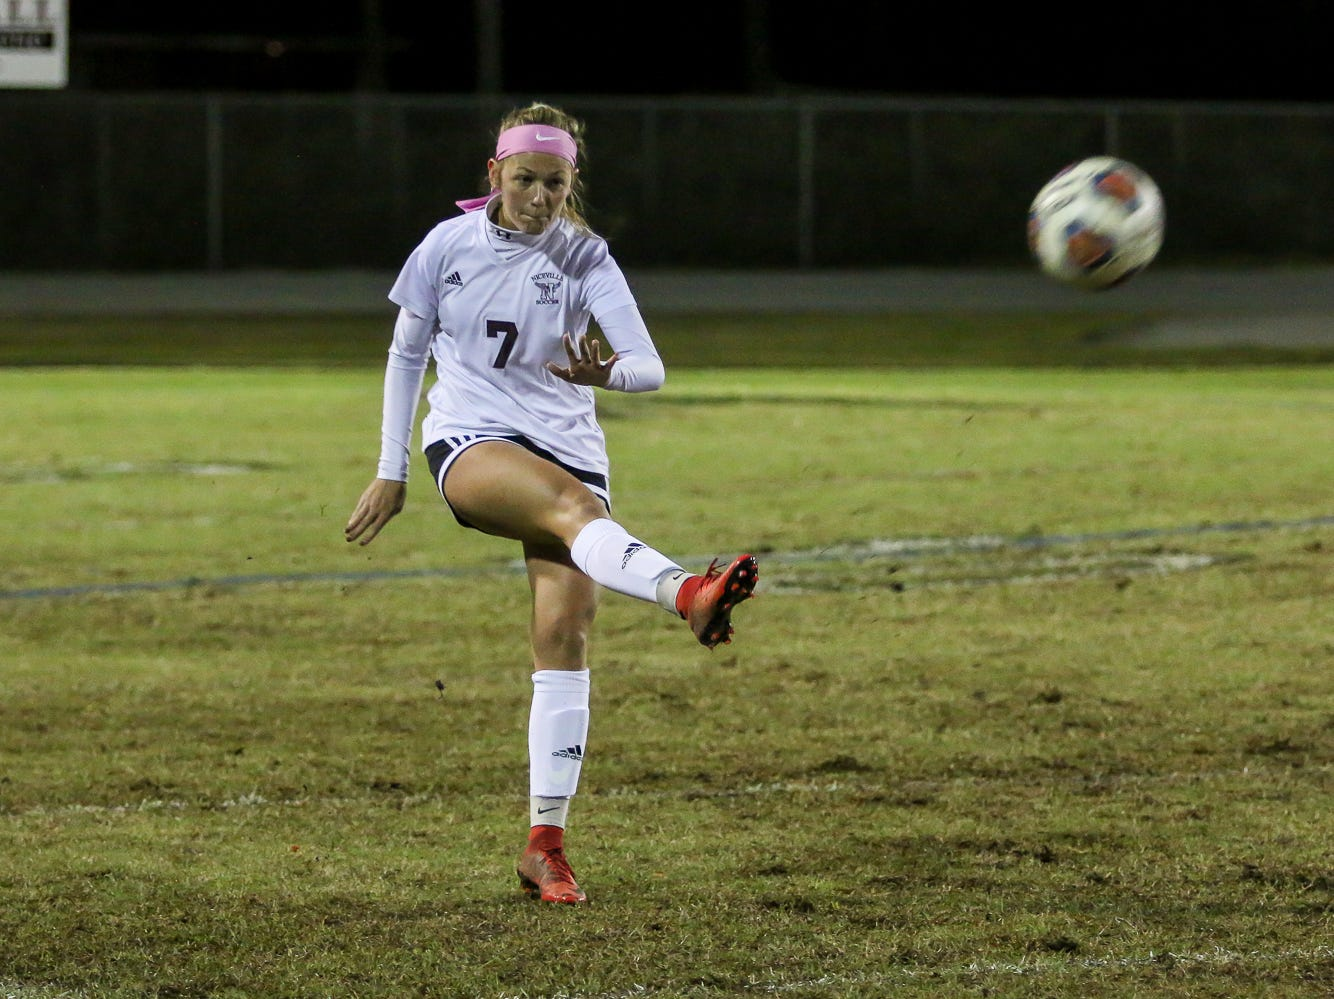 Niceville's Avery Hanson (7) kicks the ball into play against Navarre in a District 1-4A showdown of unbeaten teams at Navarre High School on Tuesday, December 4, 2018. The game ended in a 1-1 tie.